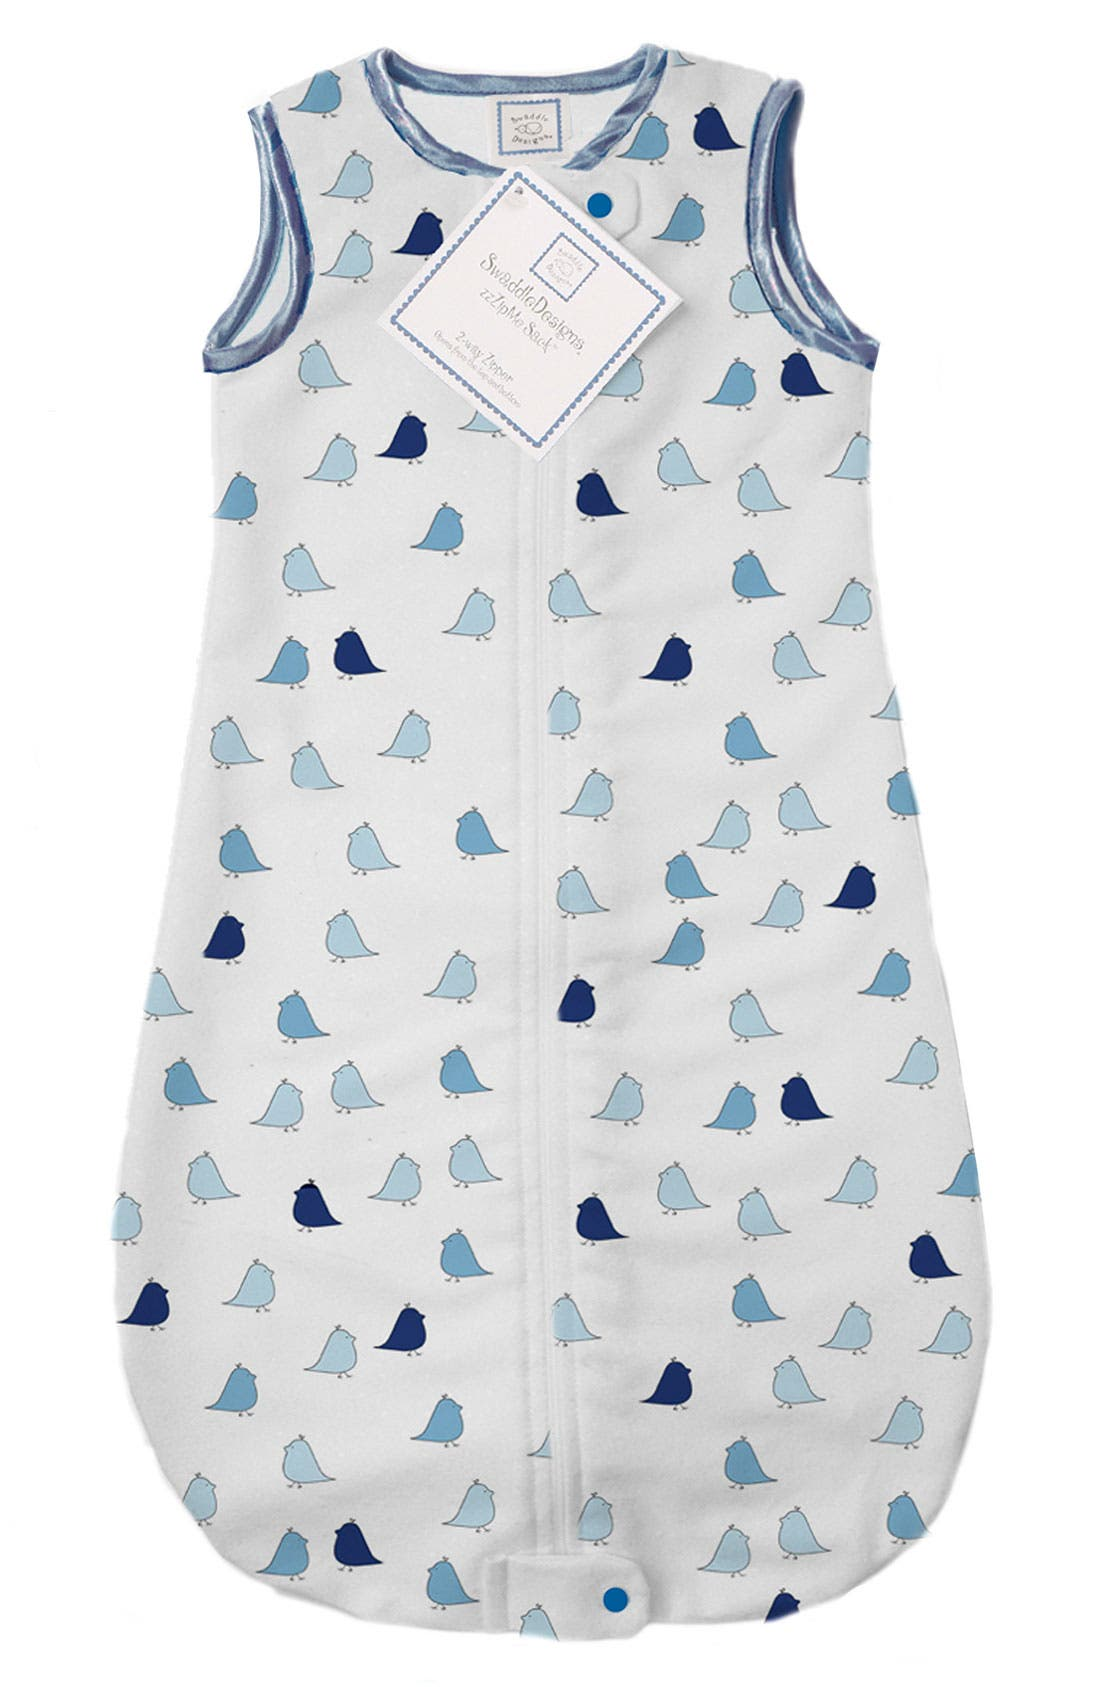 Alternate Image 1 Selected - Swaddle Designs 'zzZipme' Flannel Wearable Blanket (Baby)